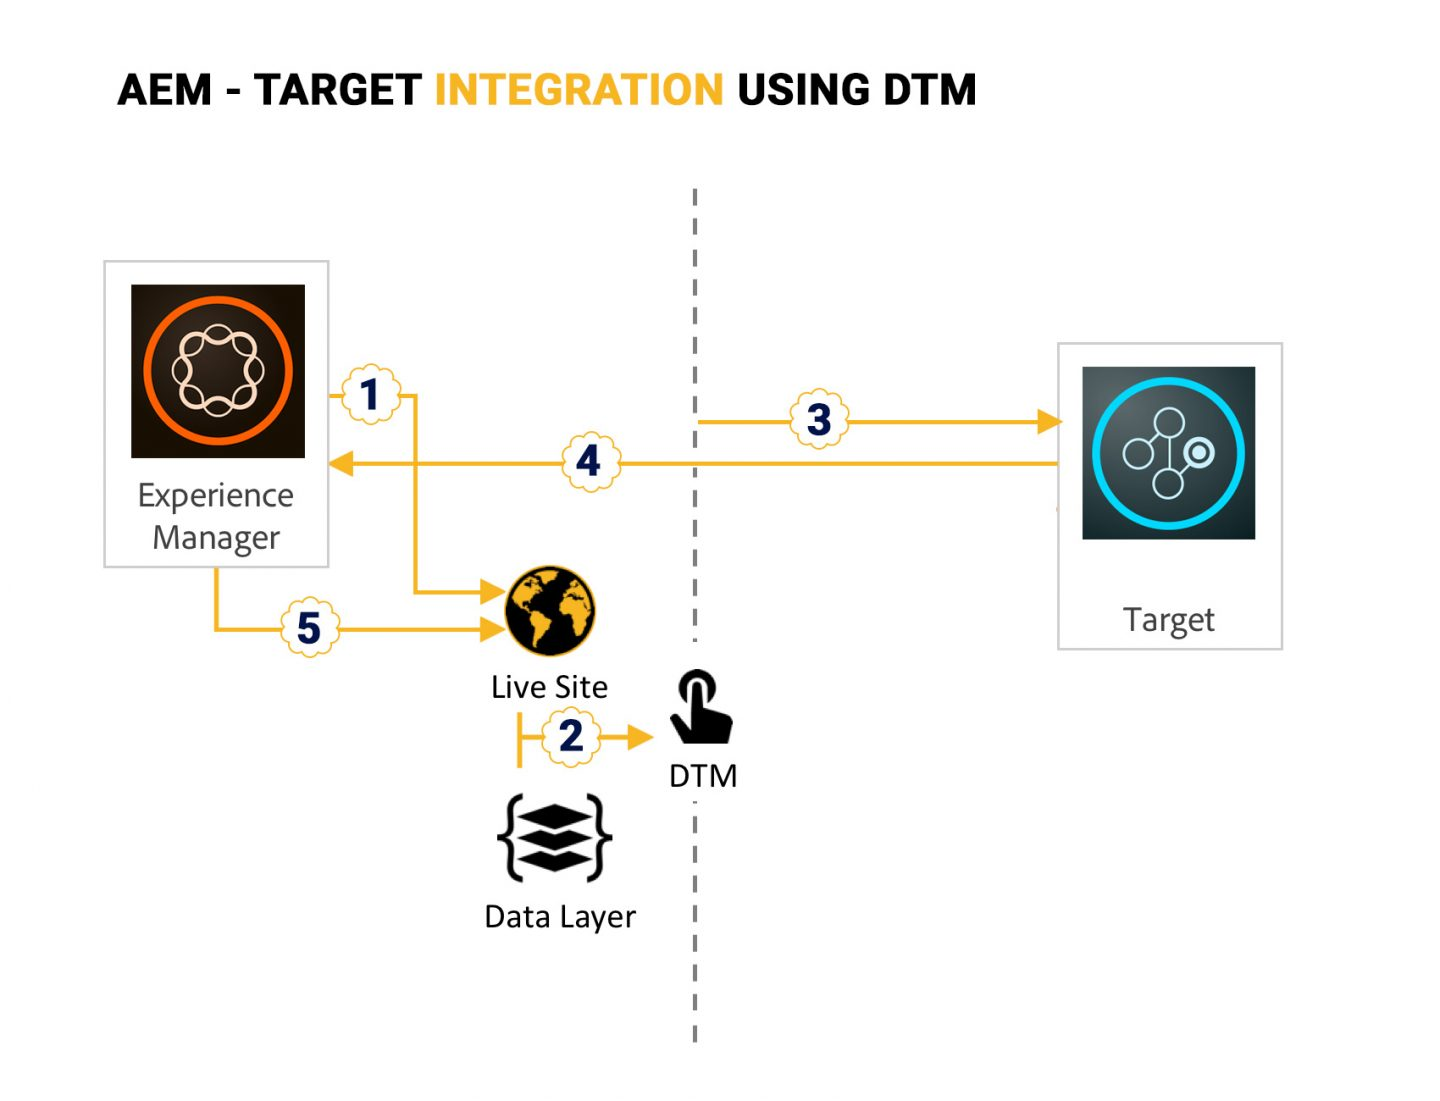 request flow for AEM-DTM-Target integration